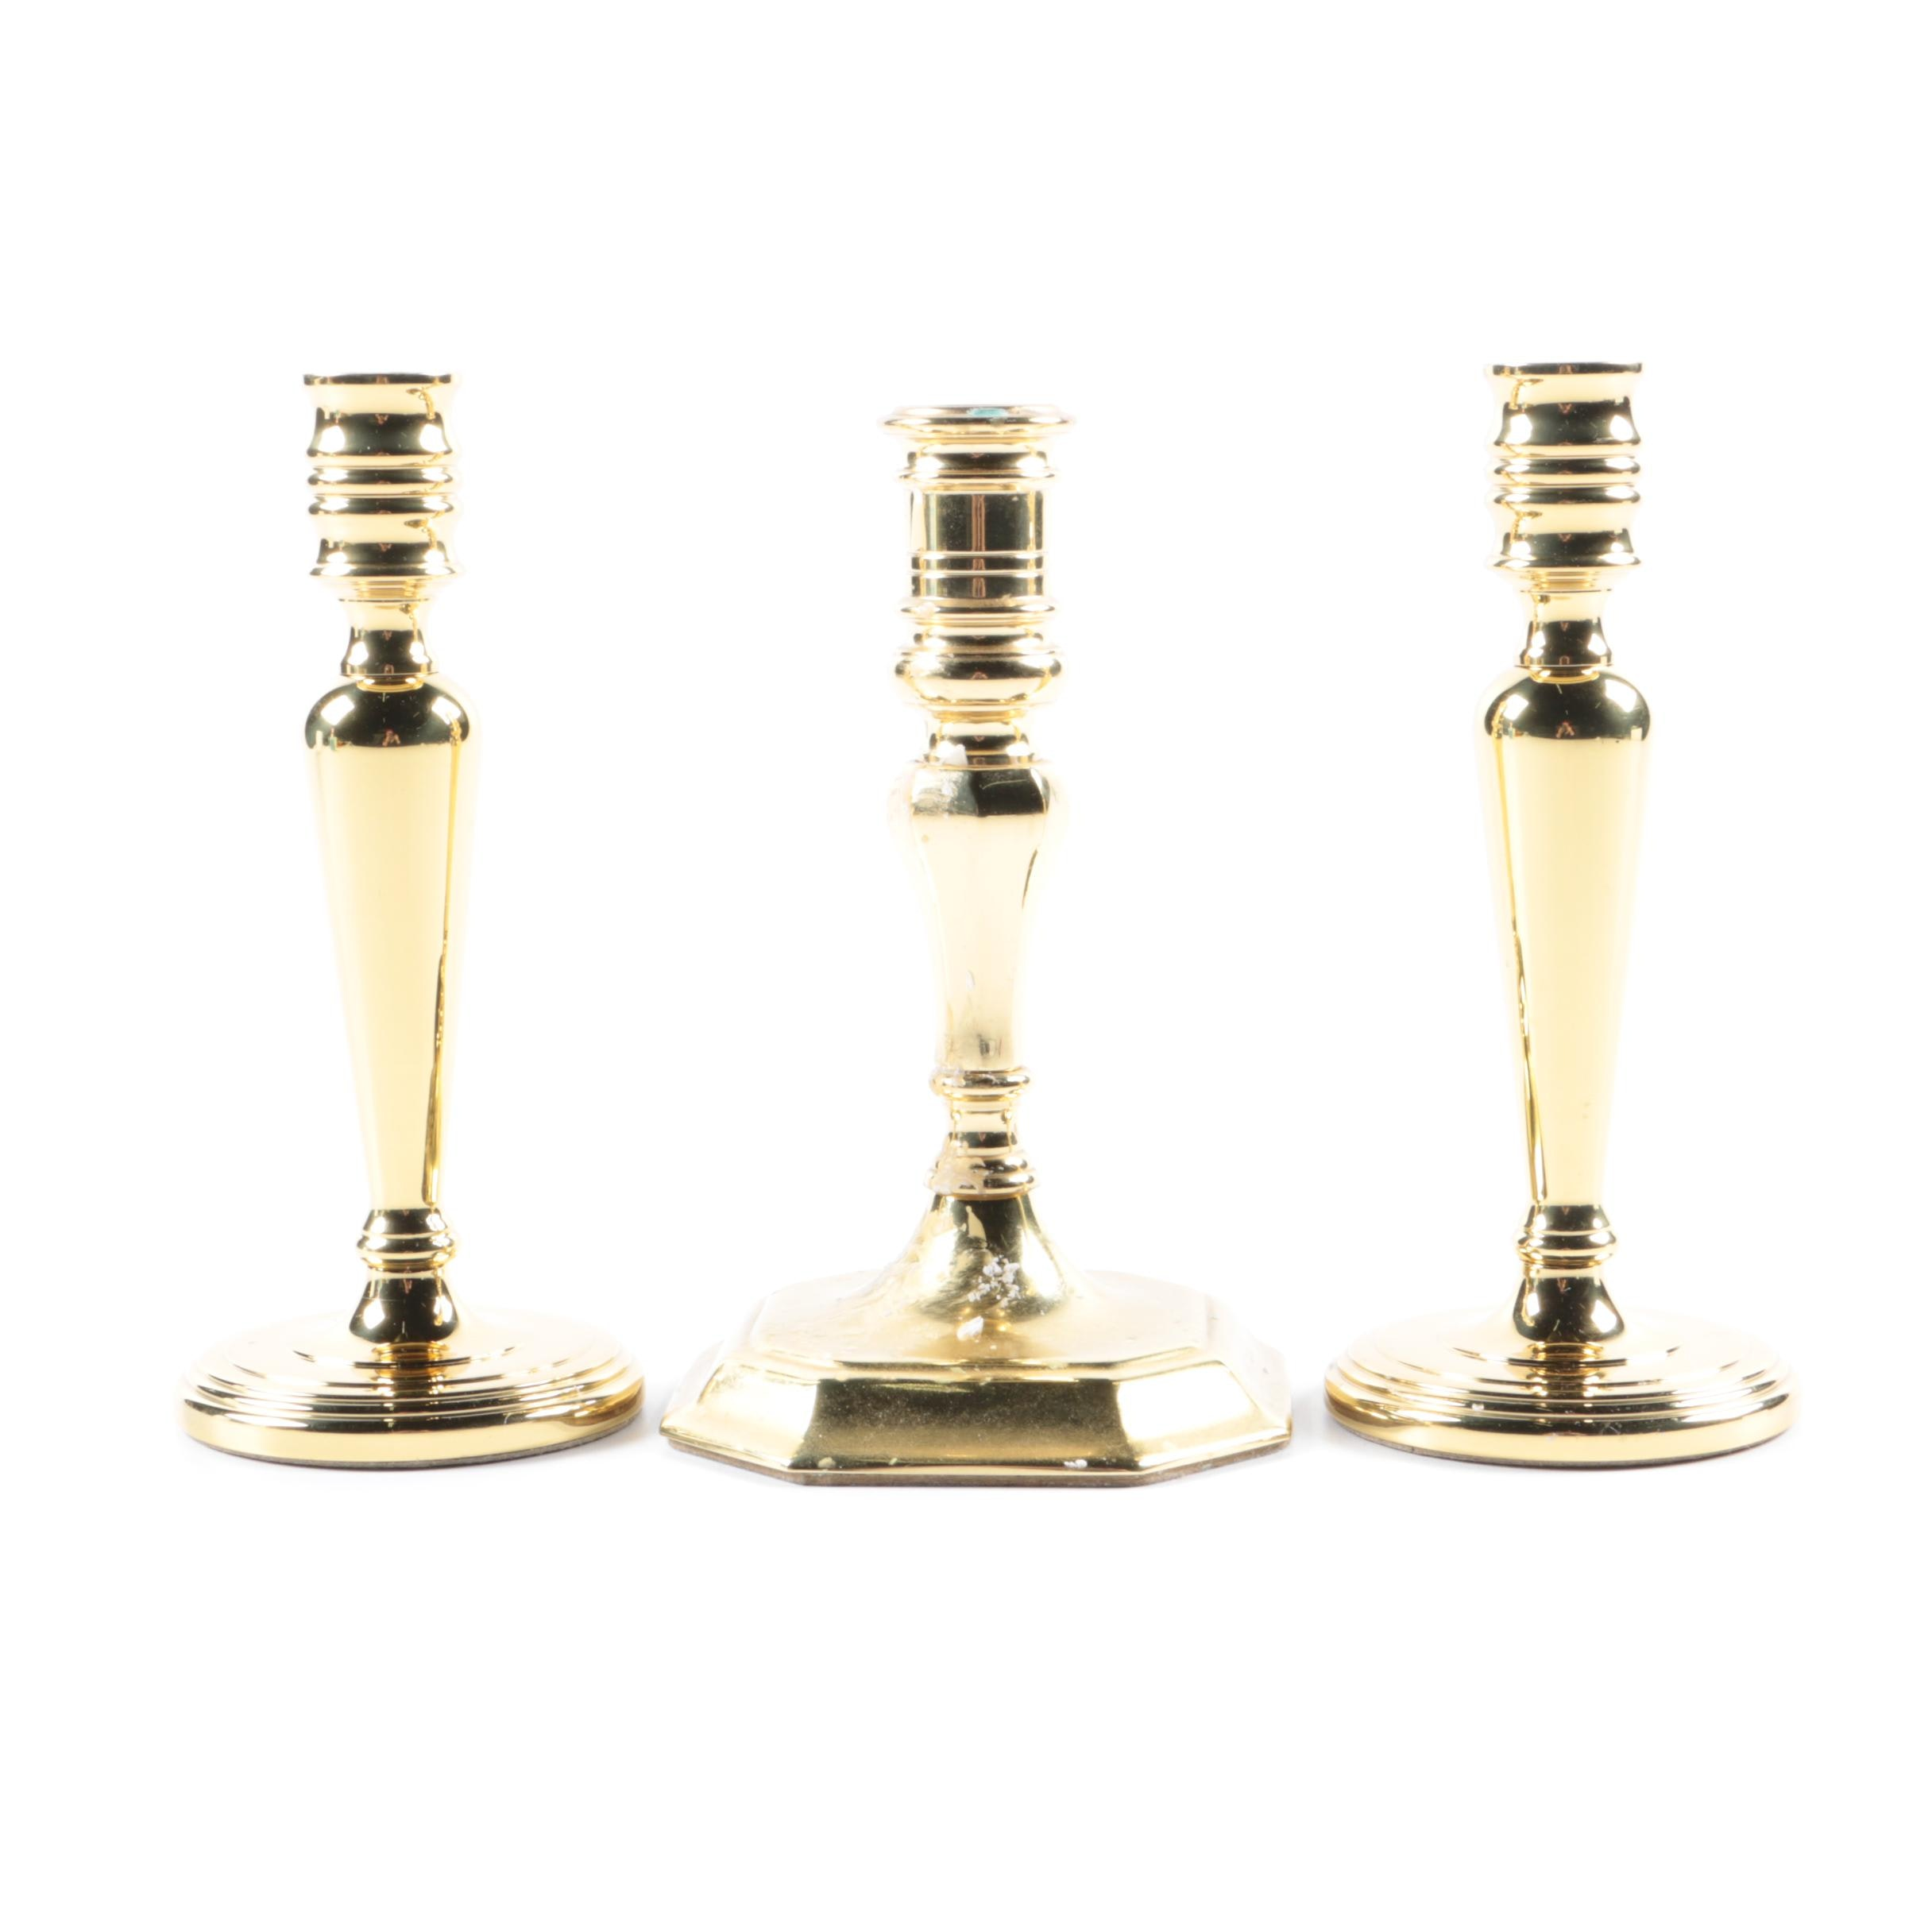 Baldwin Brass Candlesticks